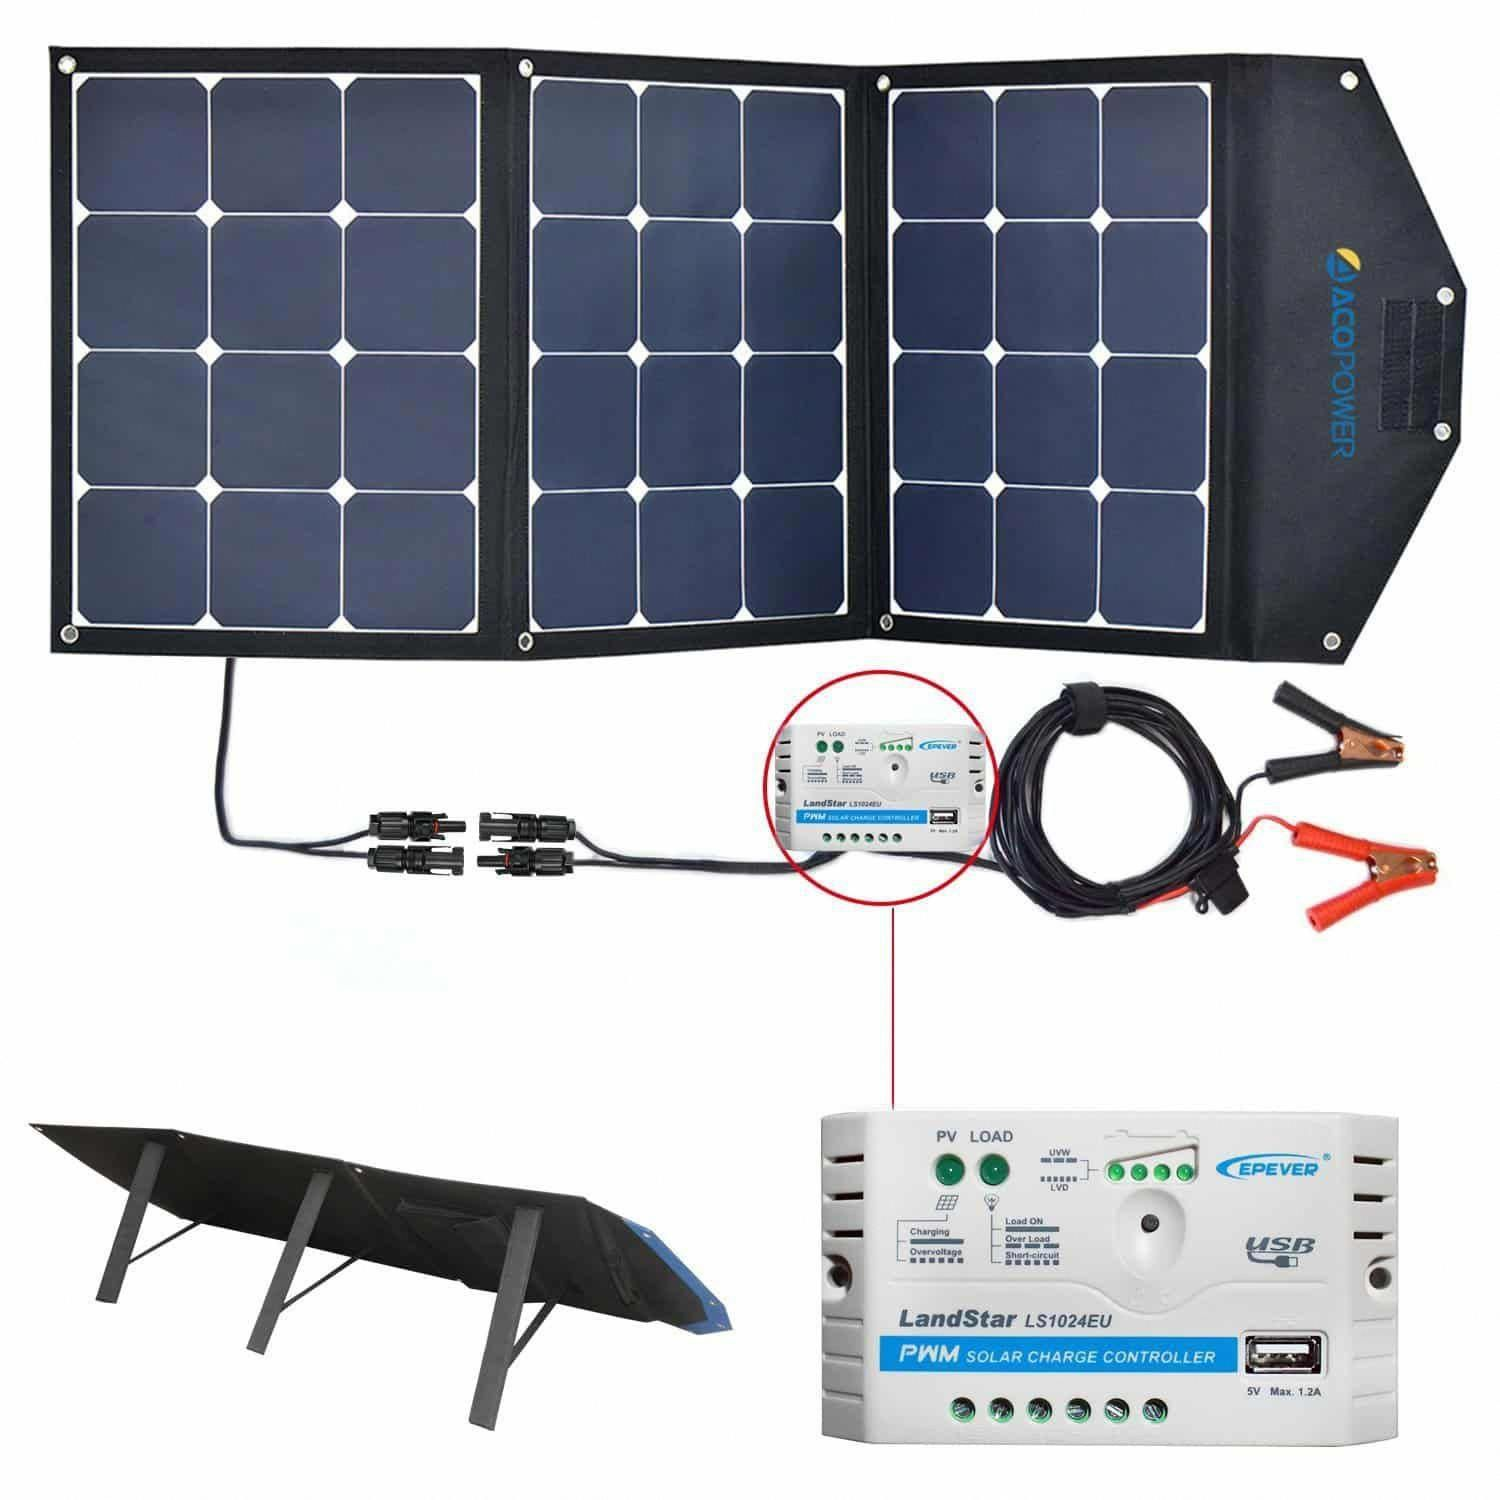 6 Acopower 12v 105w Foldable Solar Power Generator Solarpanels Solarenergy Solarpower Solargenerator Solarpa Solar Panels Solar Panel System Solar Technology